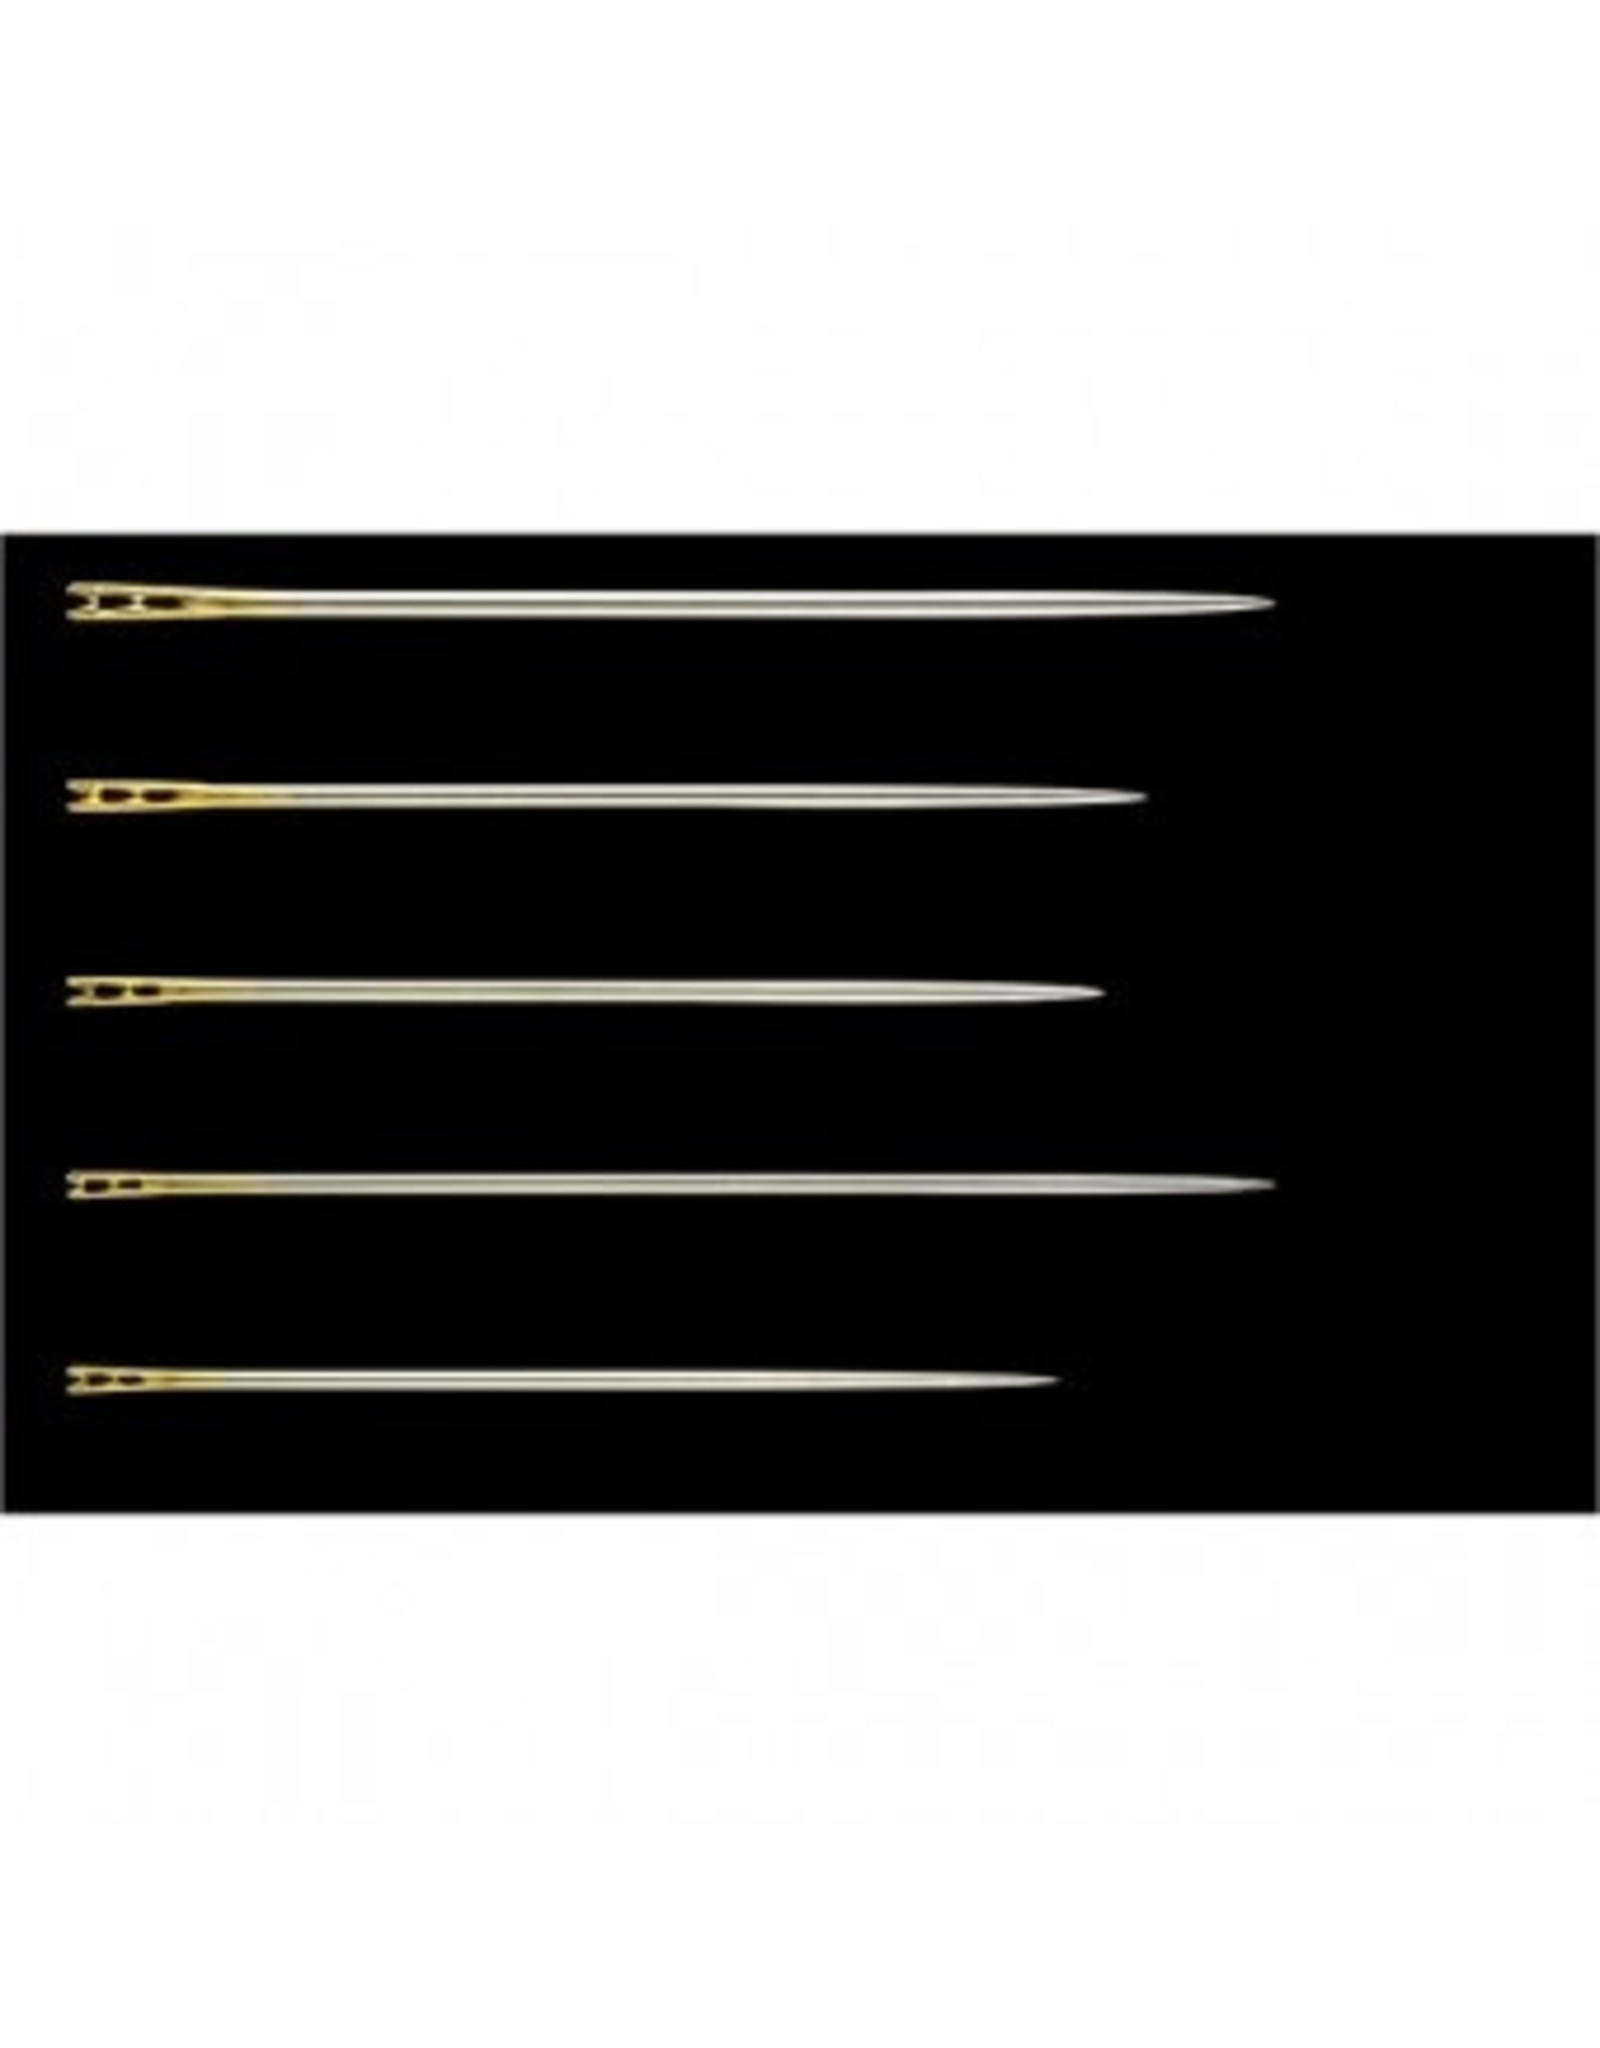 Clover Self Threading Needles - assorted